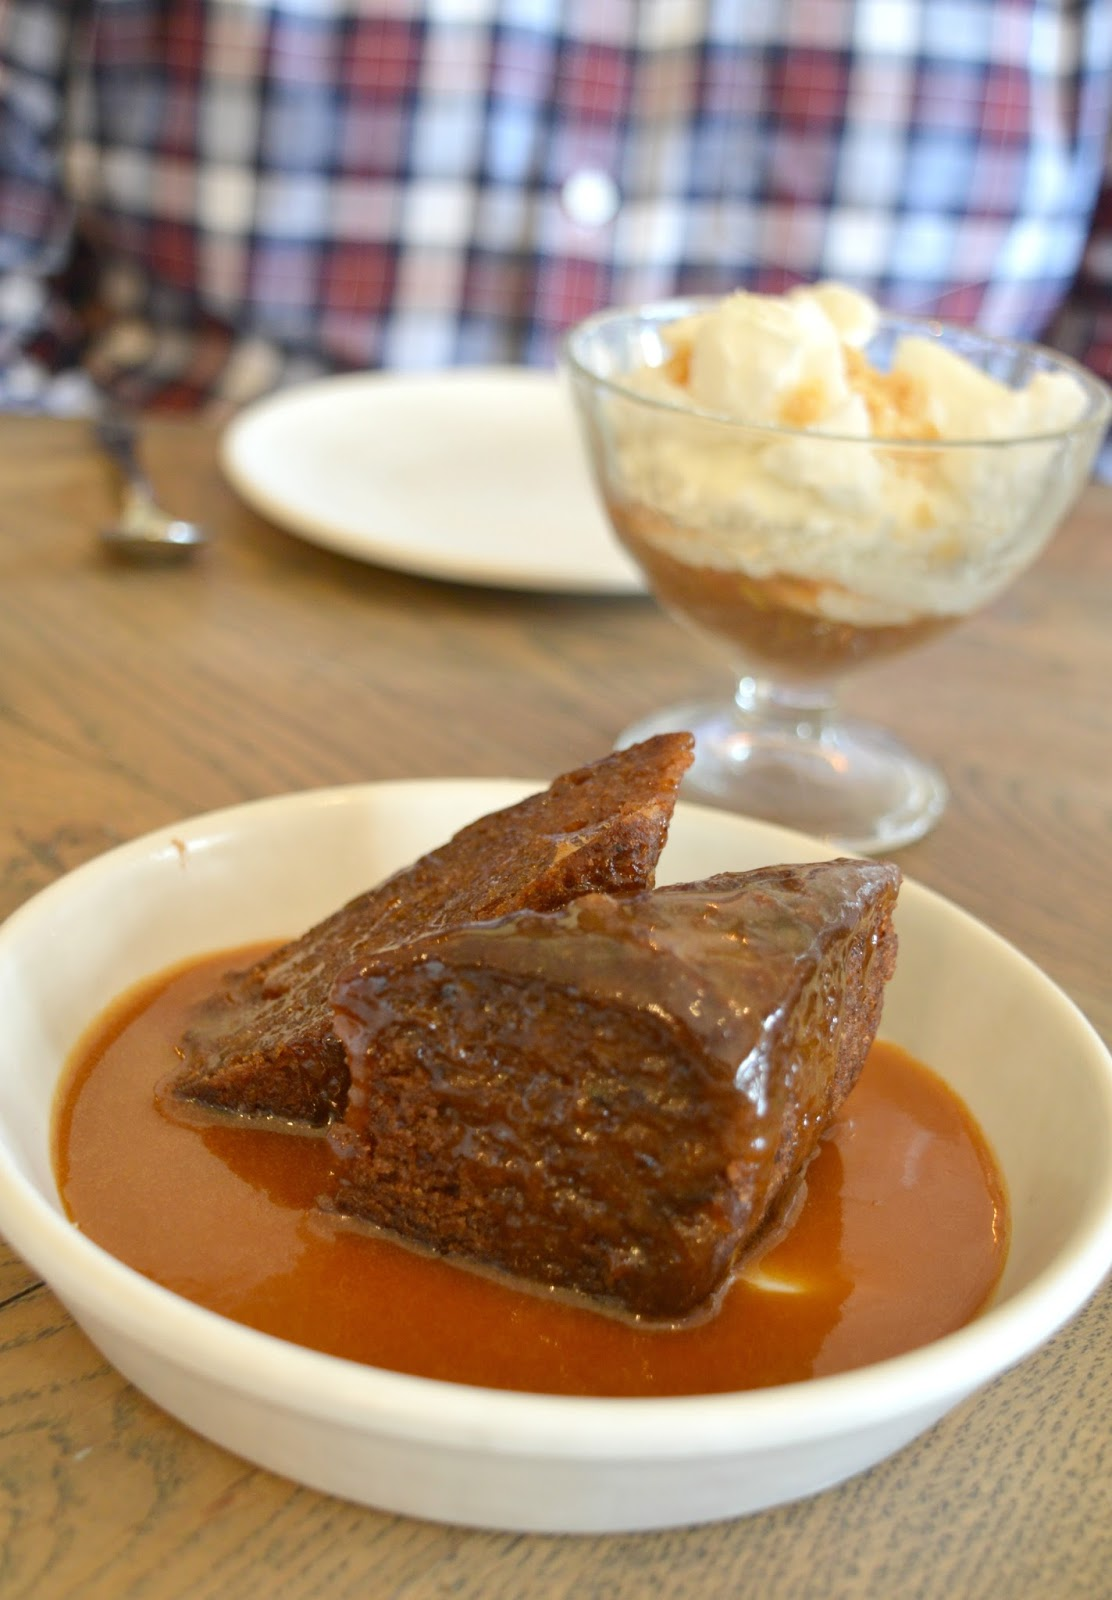 Sunday Sharing Lunch at the Lord Crewe Arms - Sticky Toffee Pudding